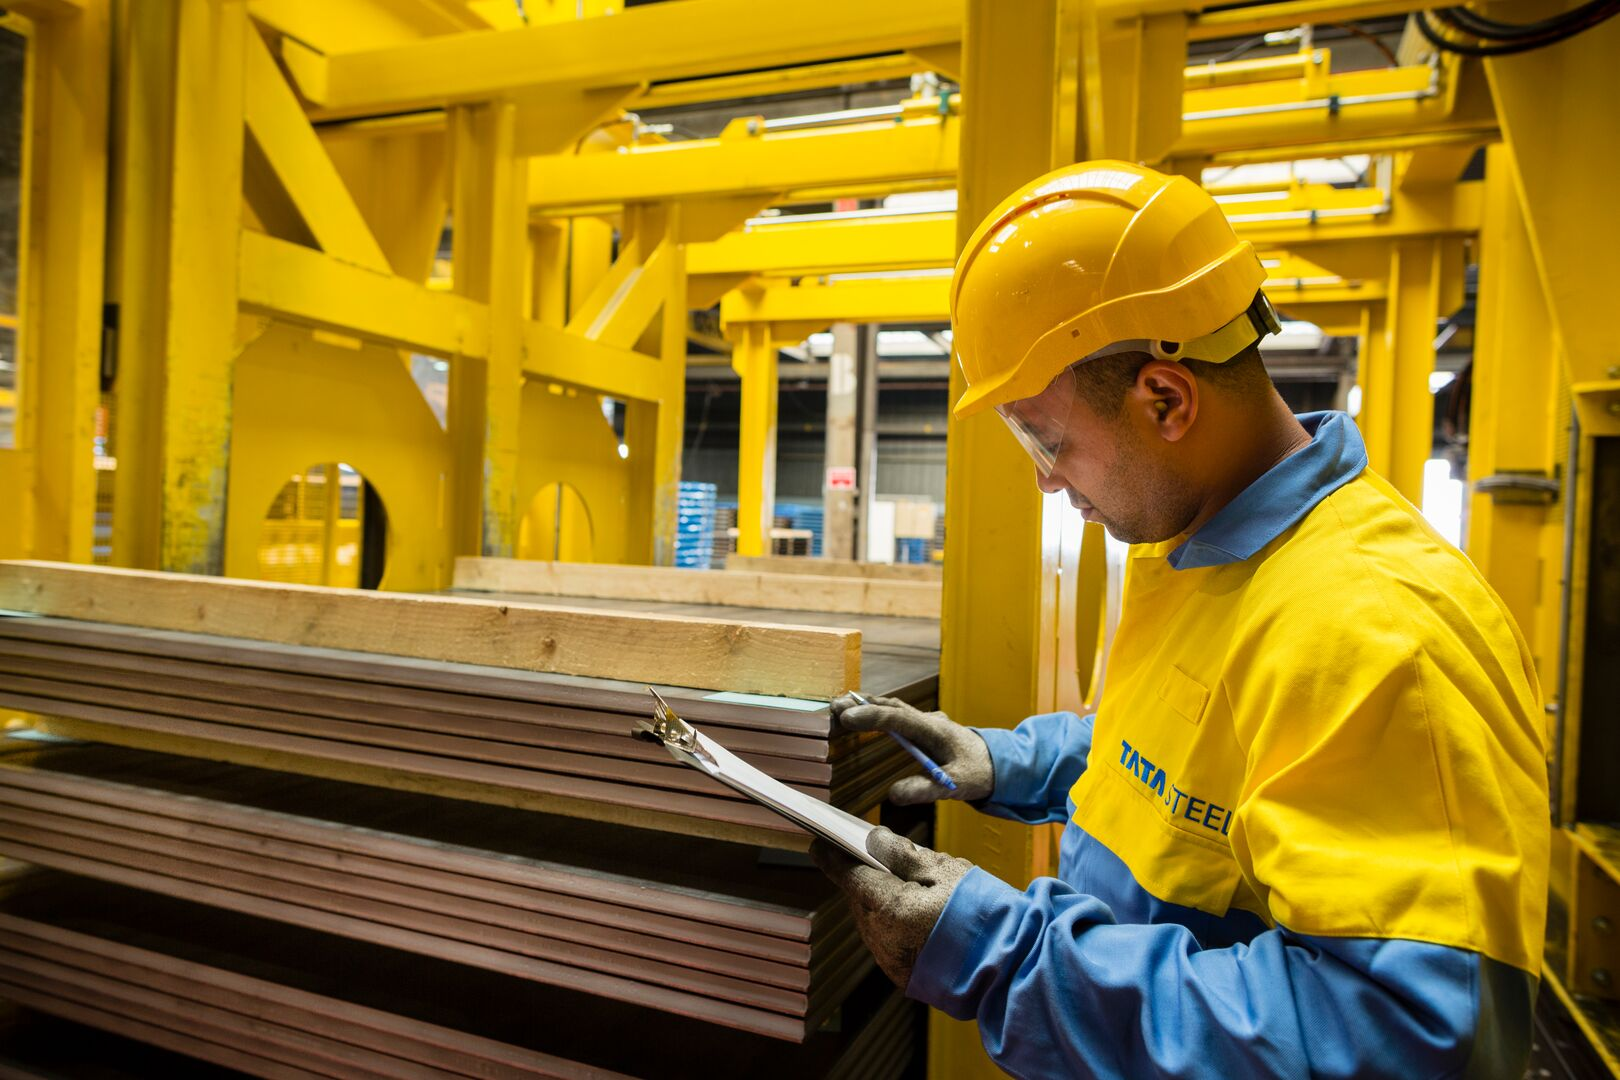 Decoiled steel sheet being inspected at the Maastrict Service Centre in Feijen.